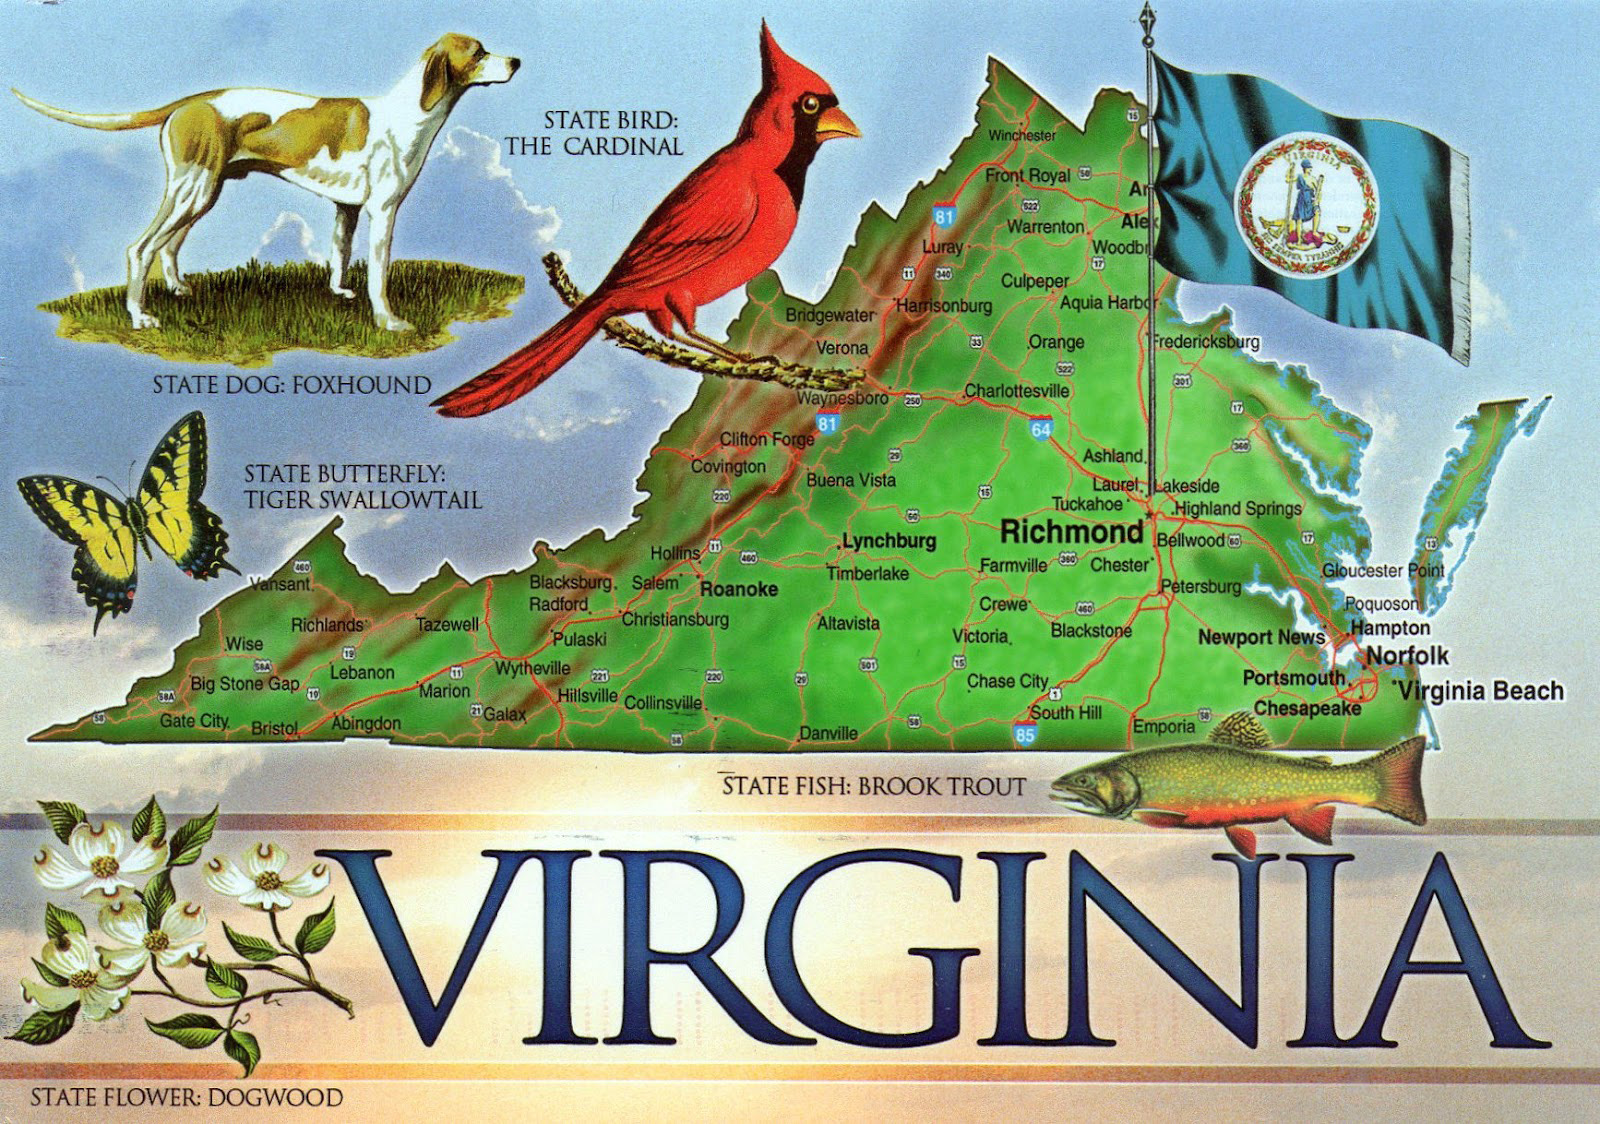 Large tourist illustrated map of the state of Virginia Virginia